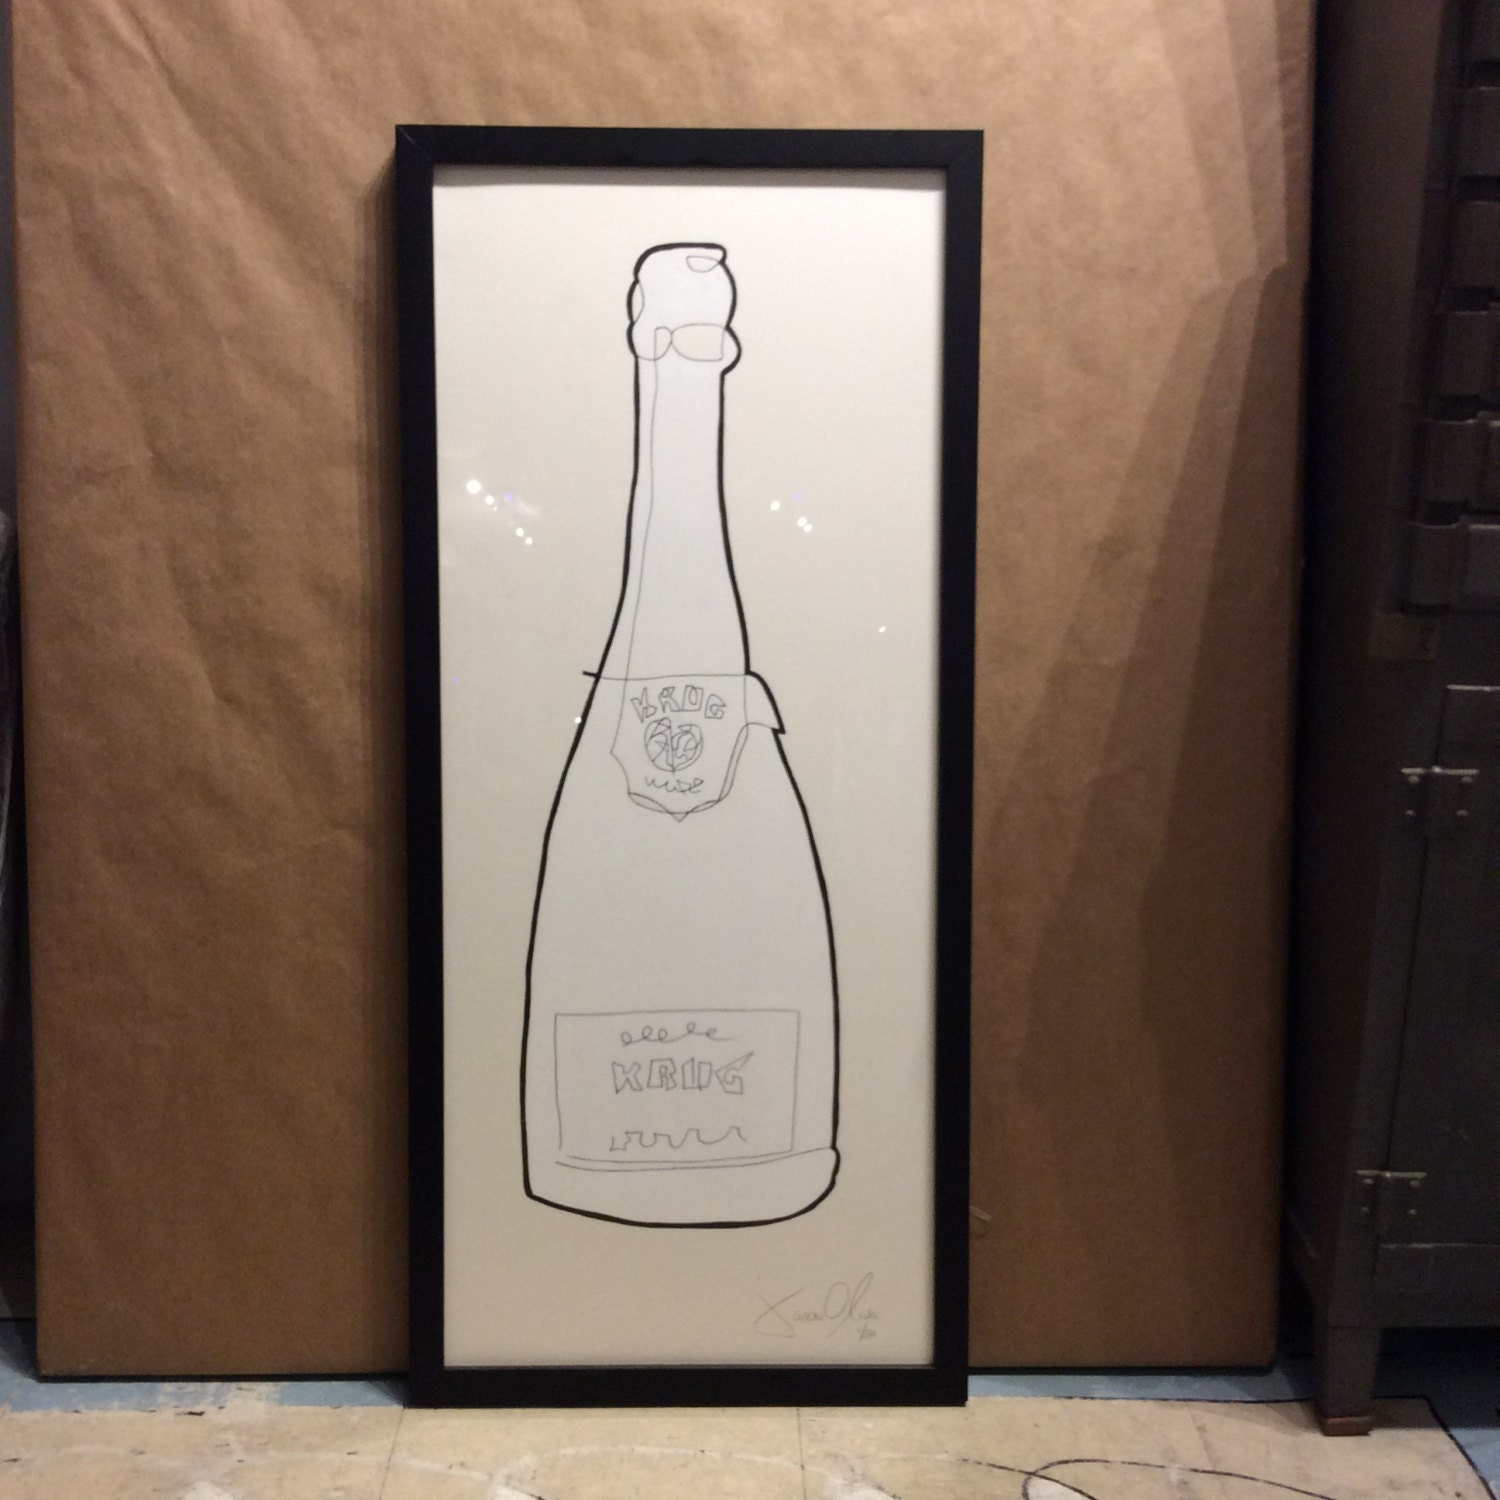 Wedding Gift Nyc Amount : Champagne art painting anniversary gift wedding gift Krug